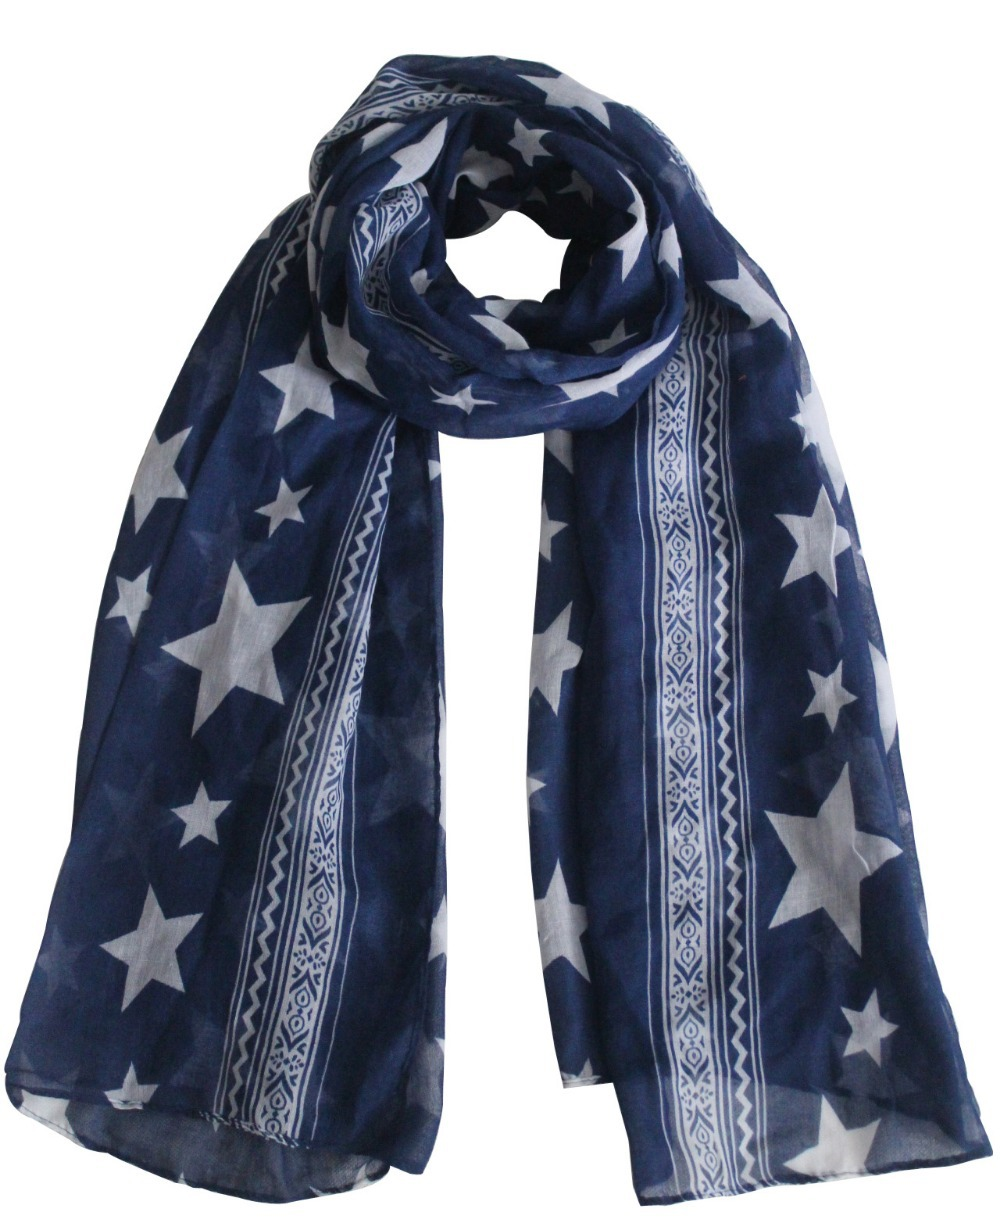 2015 New Fashionable Women Autumn Winter Star Print Scarfs Shawls Wrap For Ladies Gifts(China (Mainland))